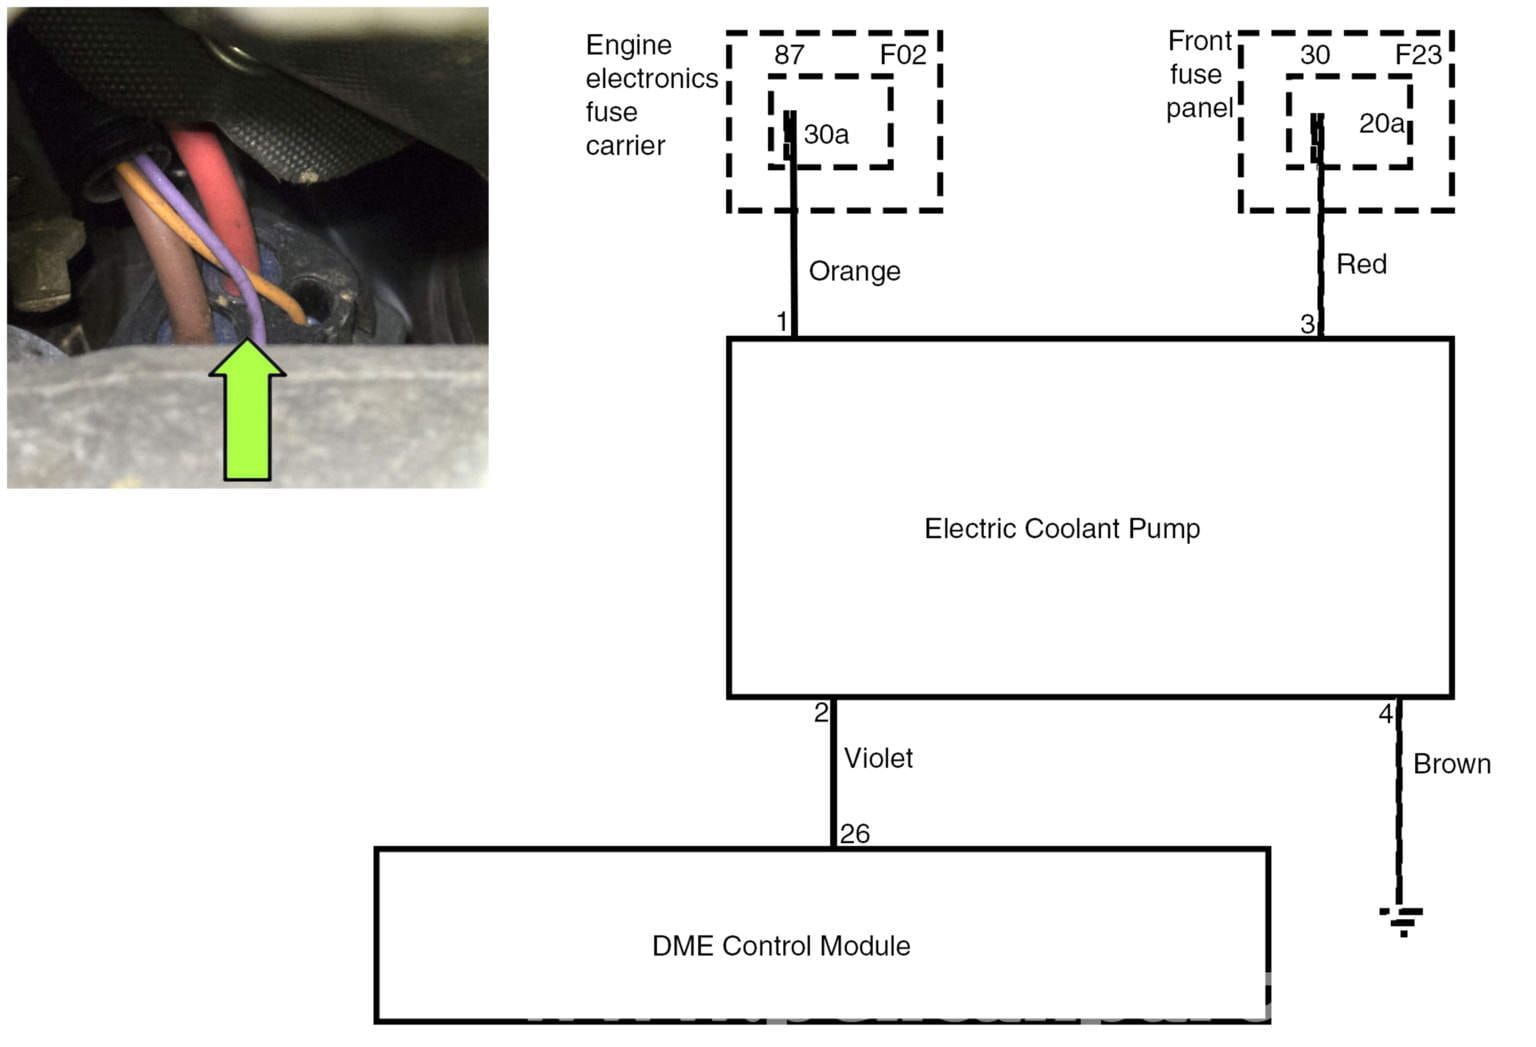 Bmw E60 Wiring Diagram Servotronic Ford 4 0 Engine Diagram Viiintage Citroen Wirings2 Jeanjaures37 Fr